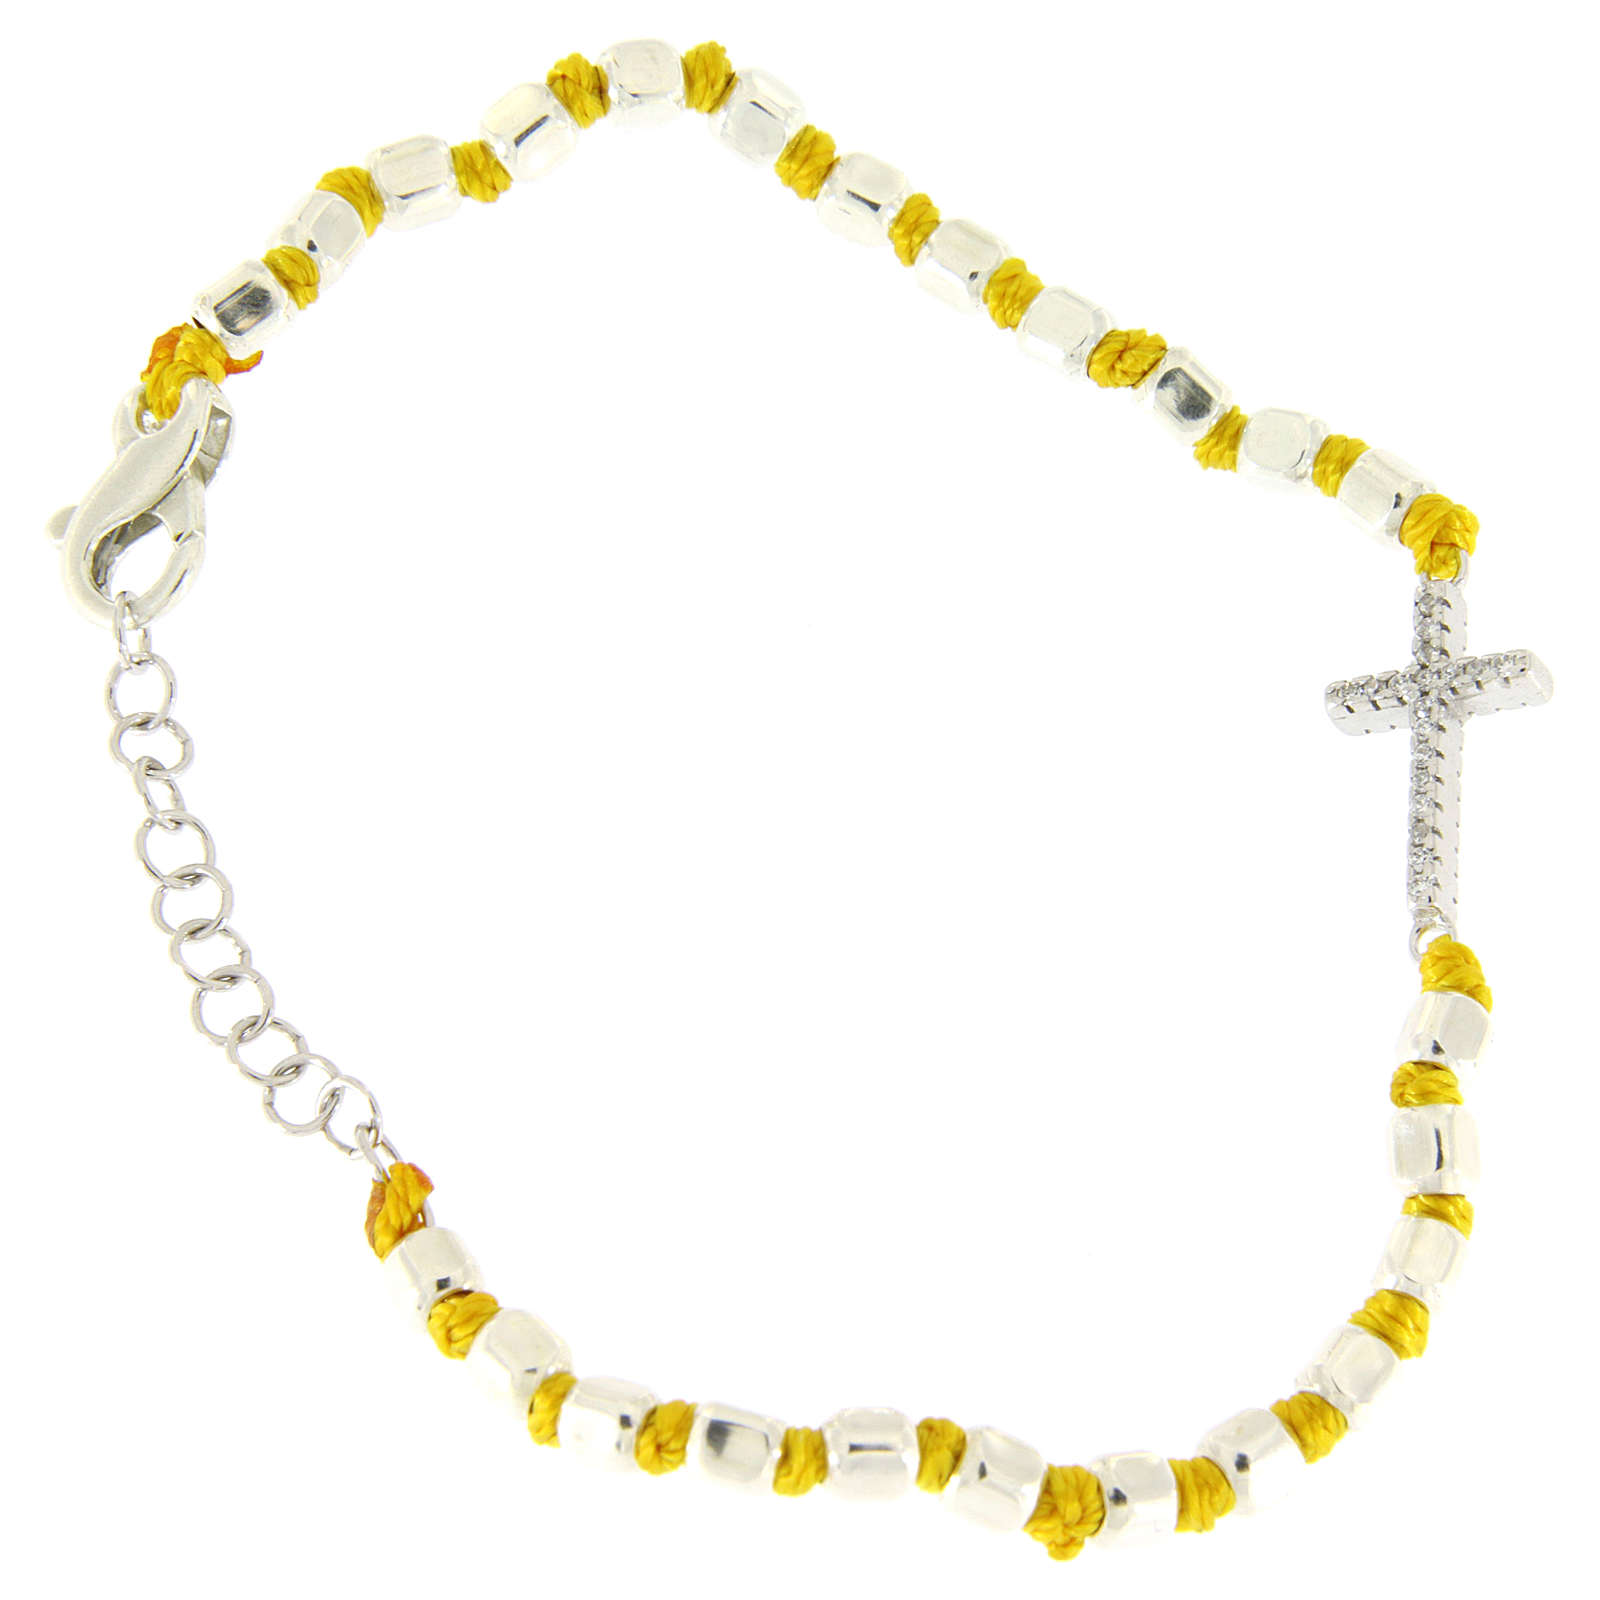 Bracelet with multifaceted spheres sized 2 mm with white zirconate cross and yellow cotton cord 4